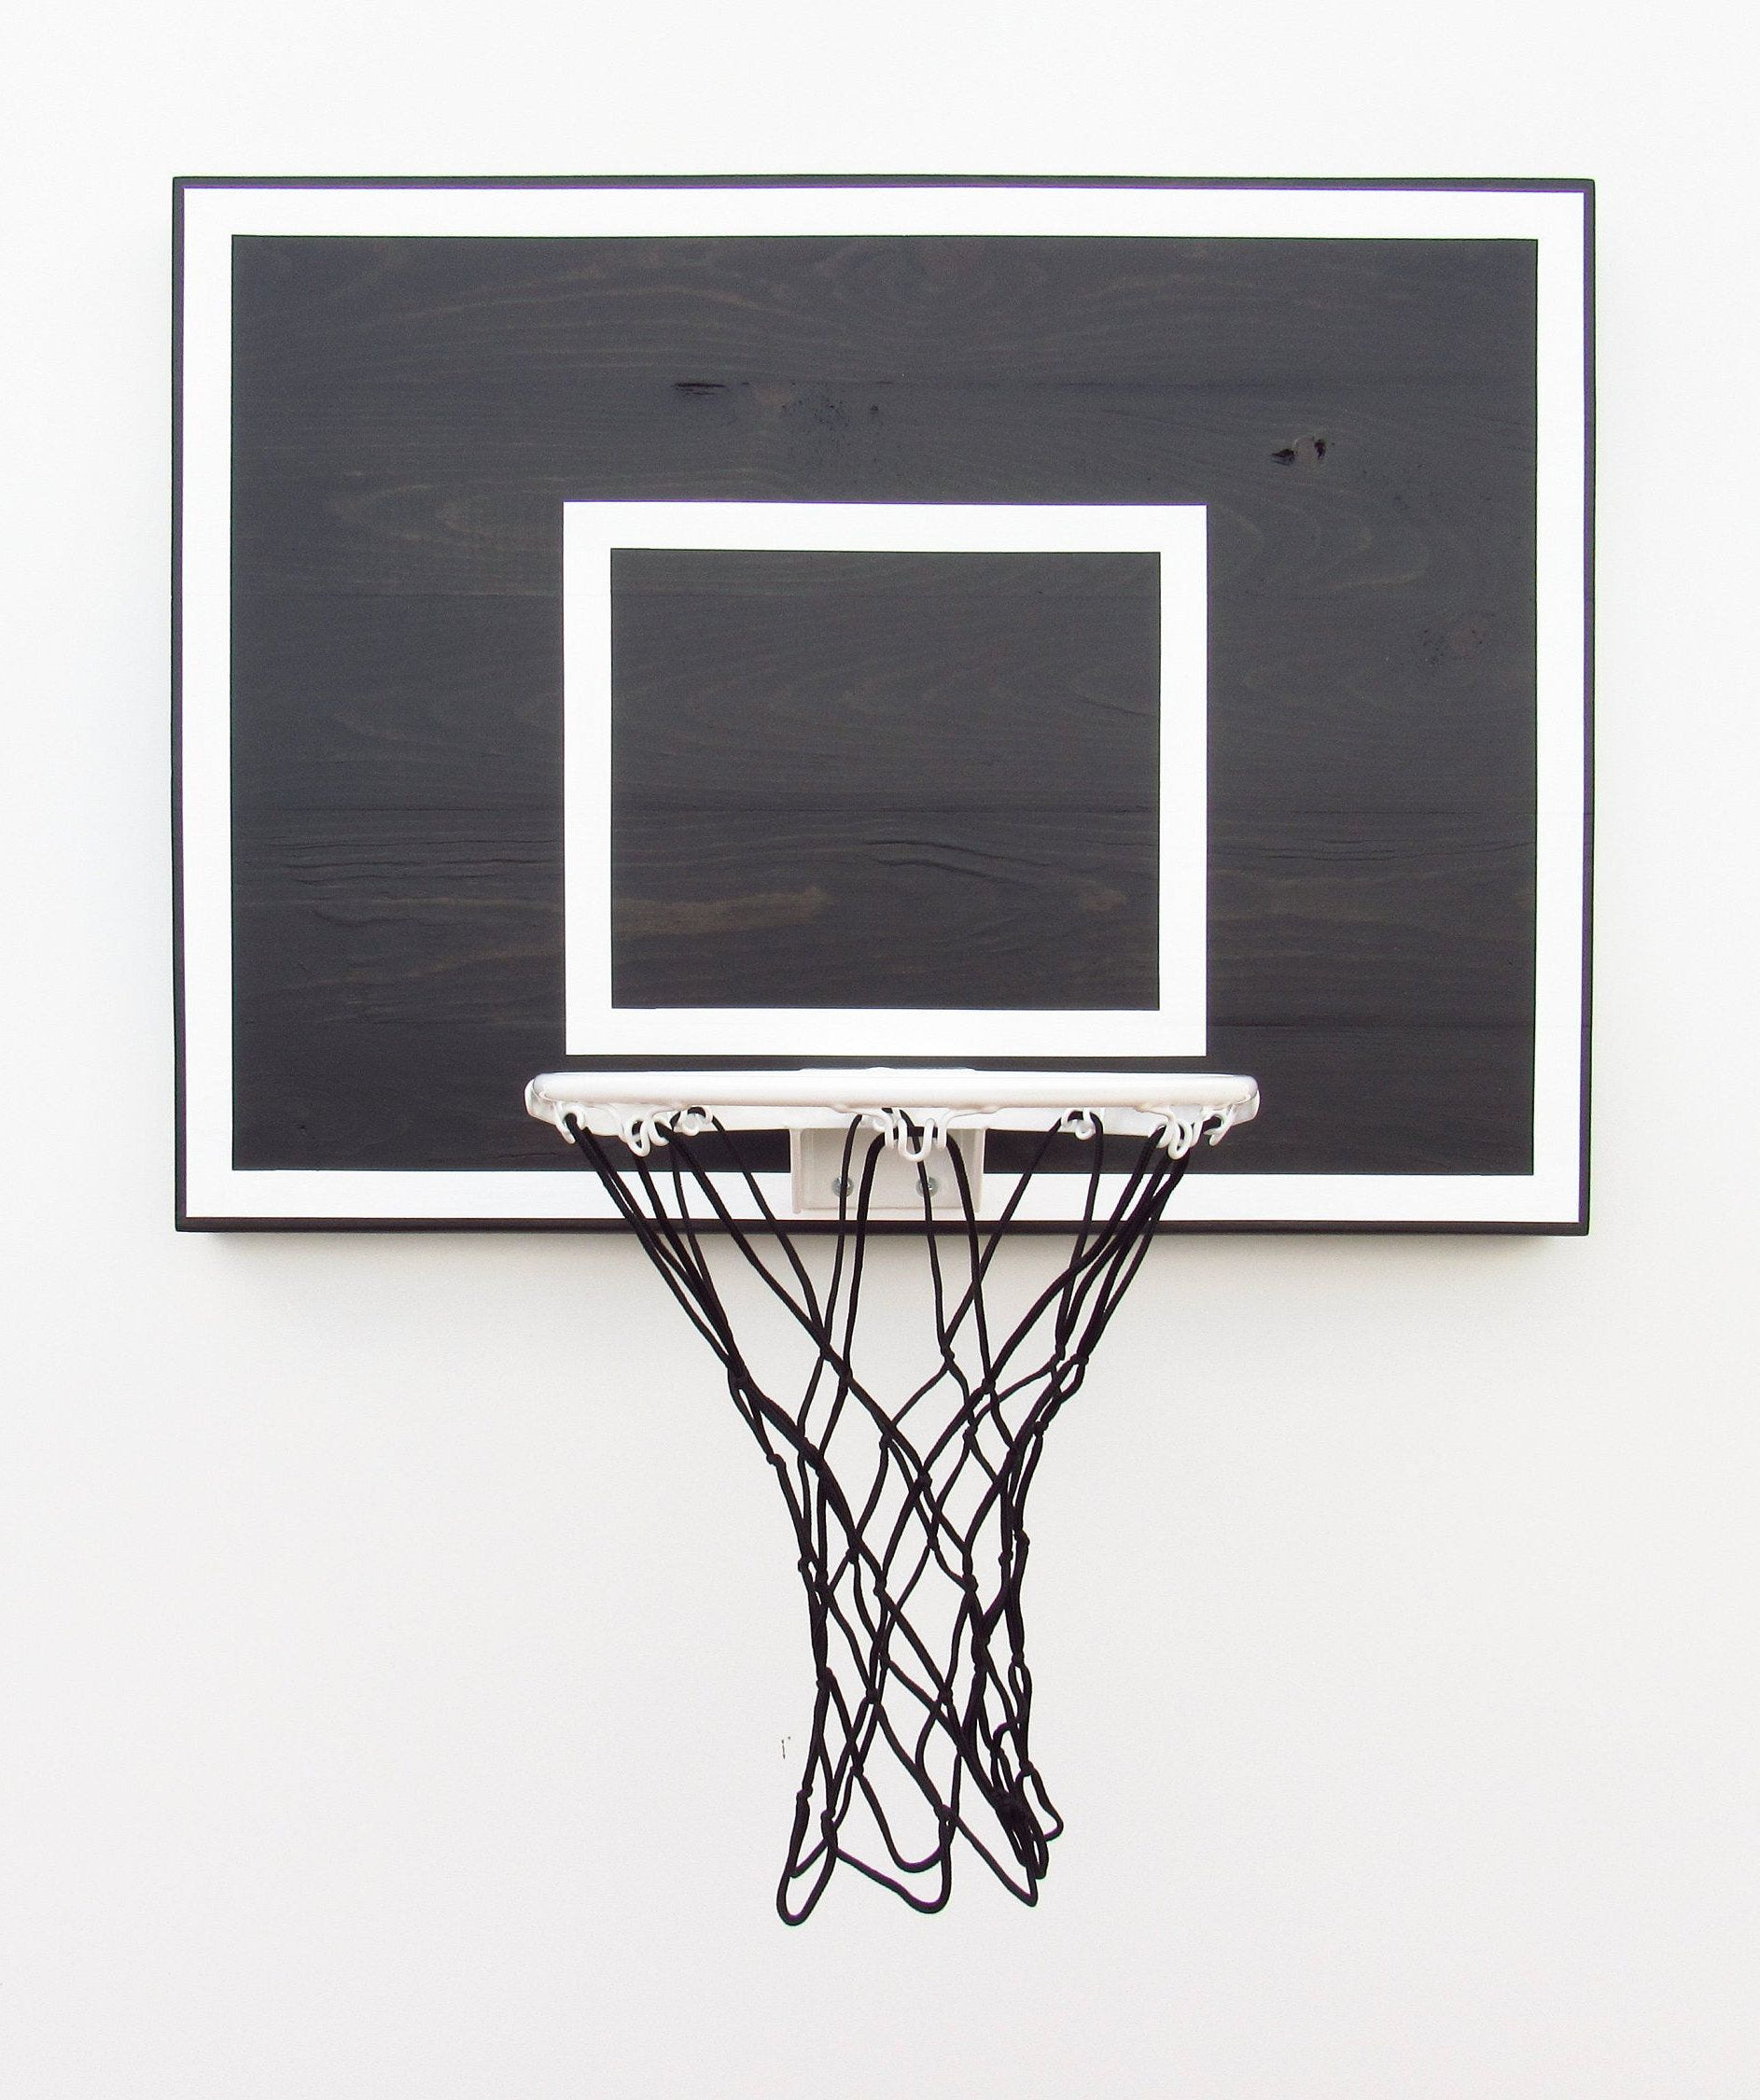 Basketball Hoops Now Come In White Our Mini Basketball Hoops Just Got A An Upgrade Https Etsy Me 2xcrzvt Indoor Basketball Hoop Basketball Hoop White Rims